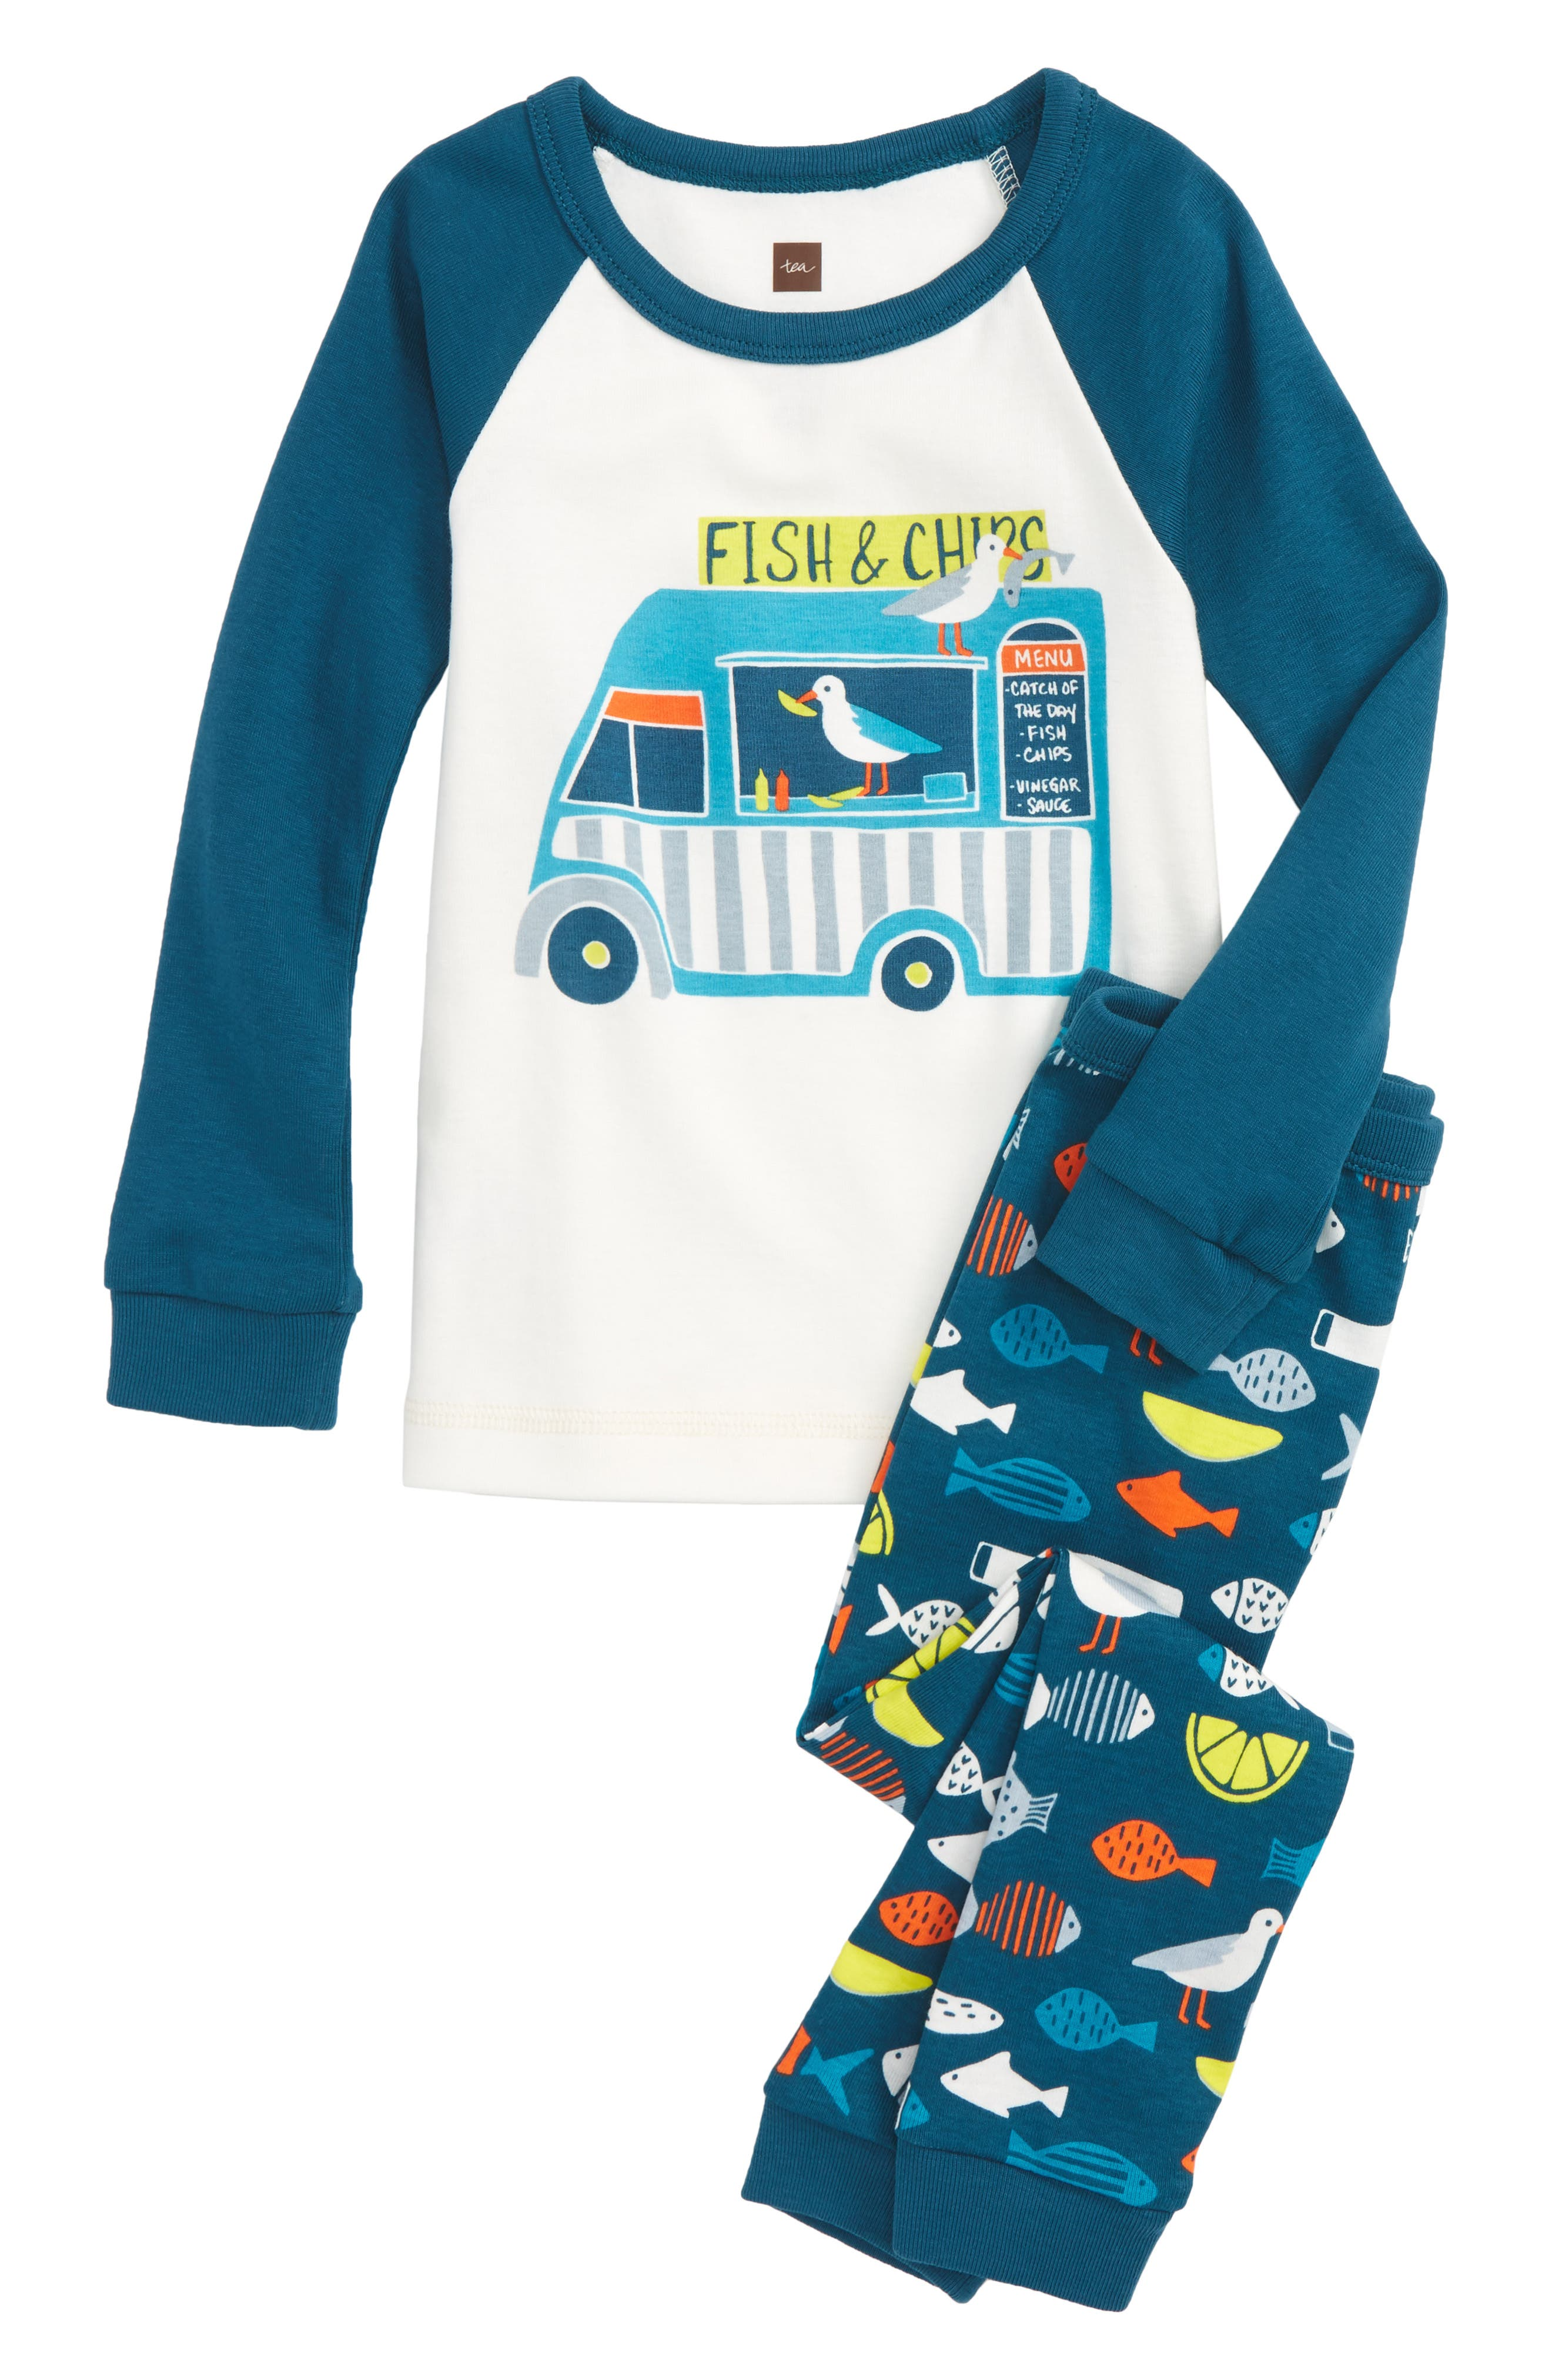 Fish & Chips Fitted Two-Piece Pajamas,                             Main thumbnail 1, color,                             413